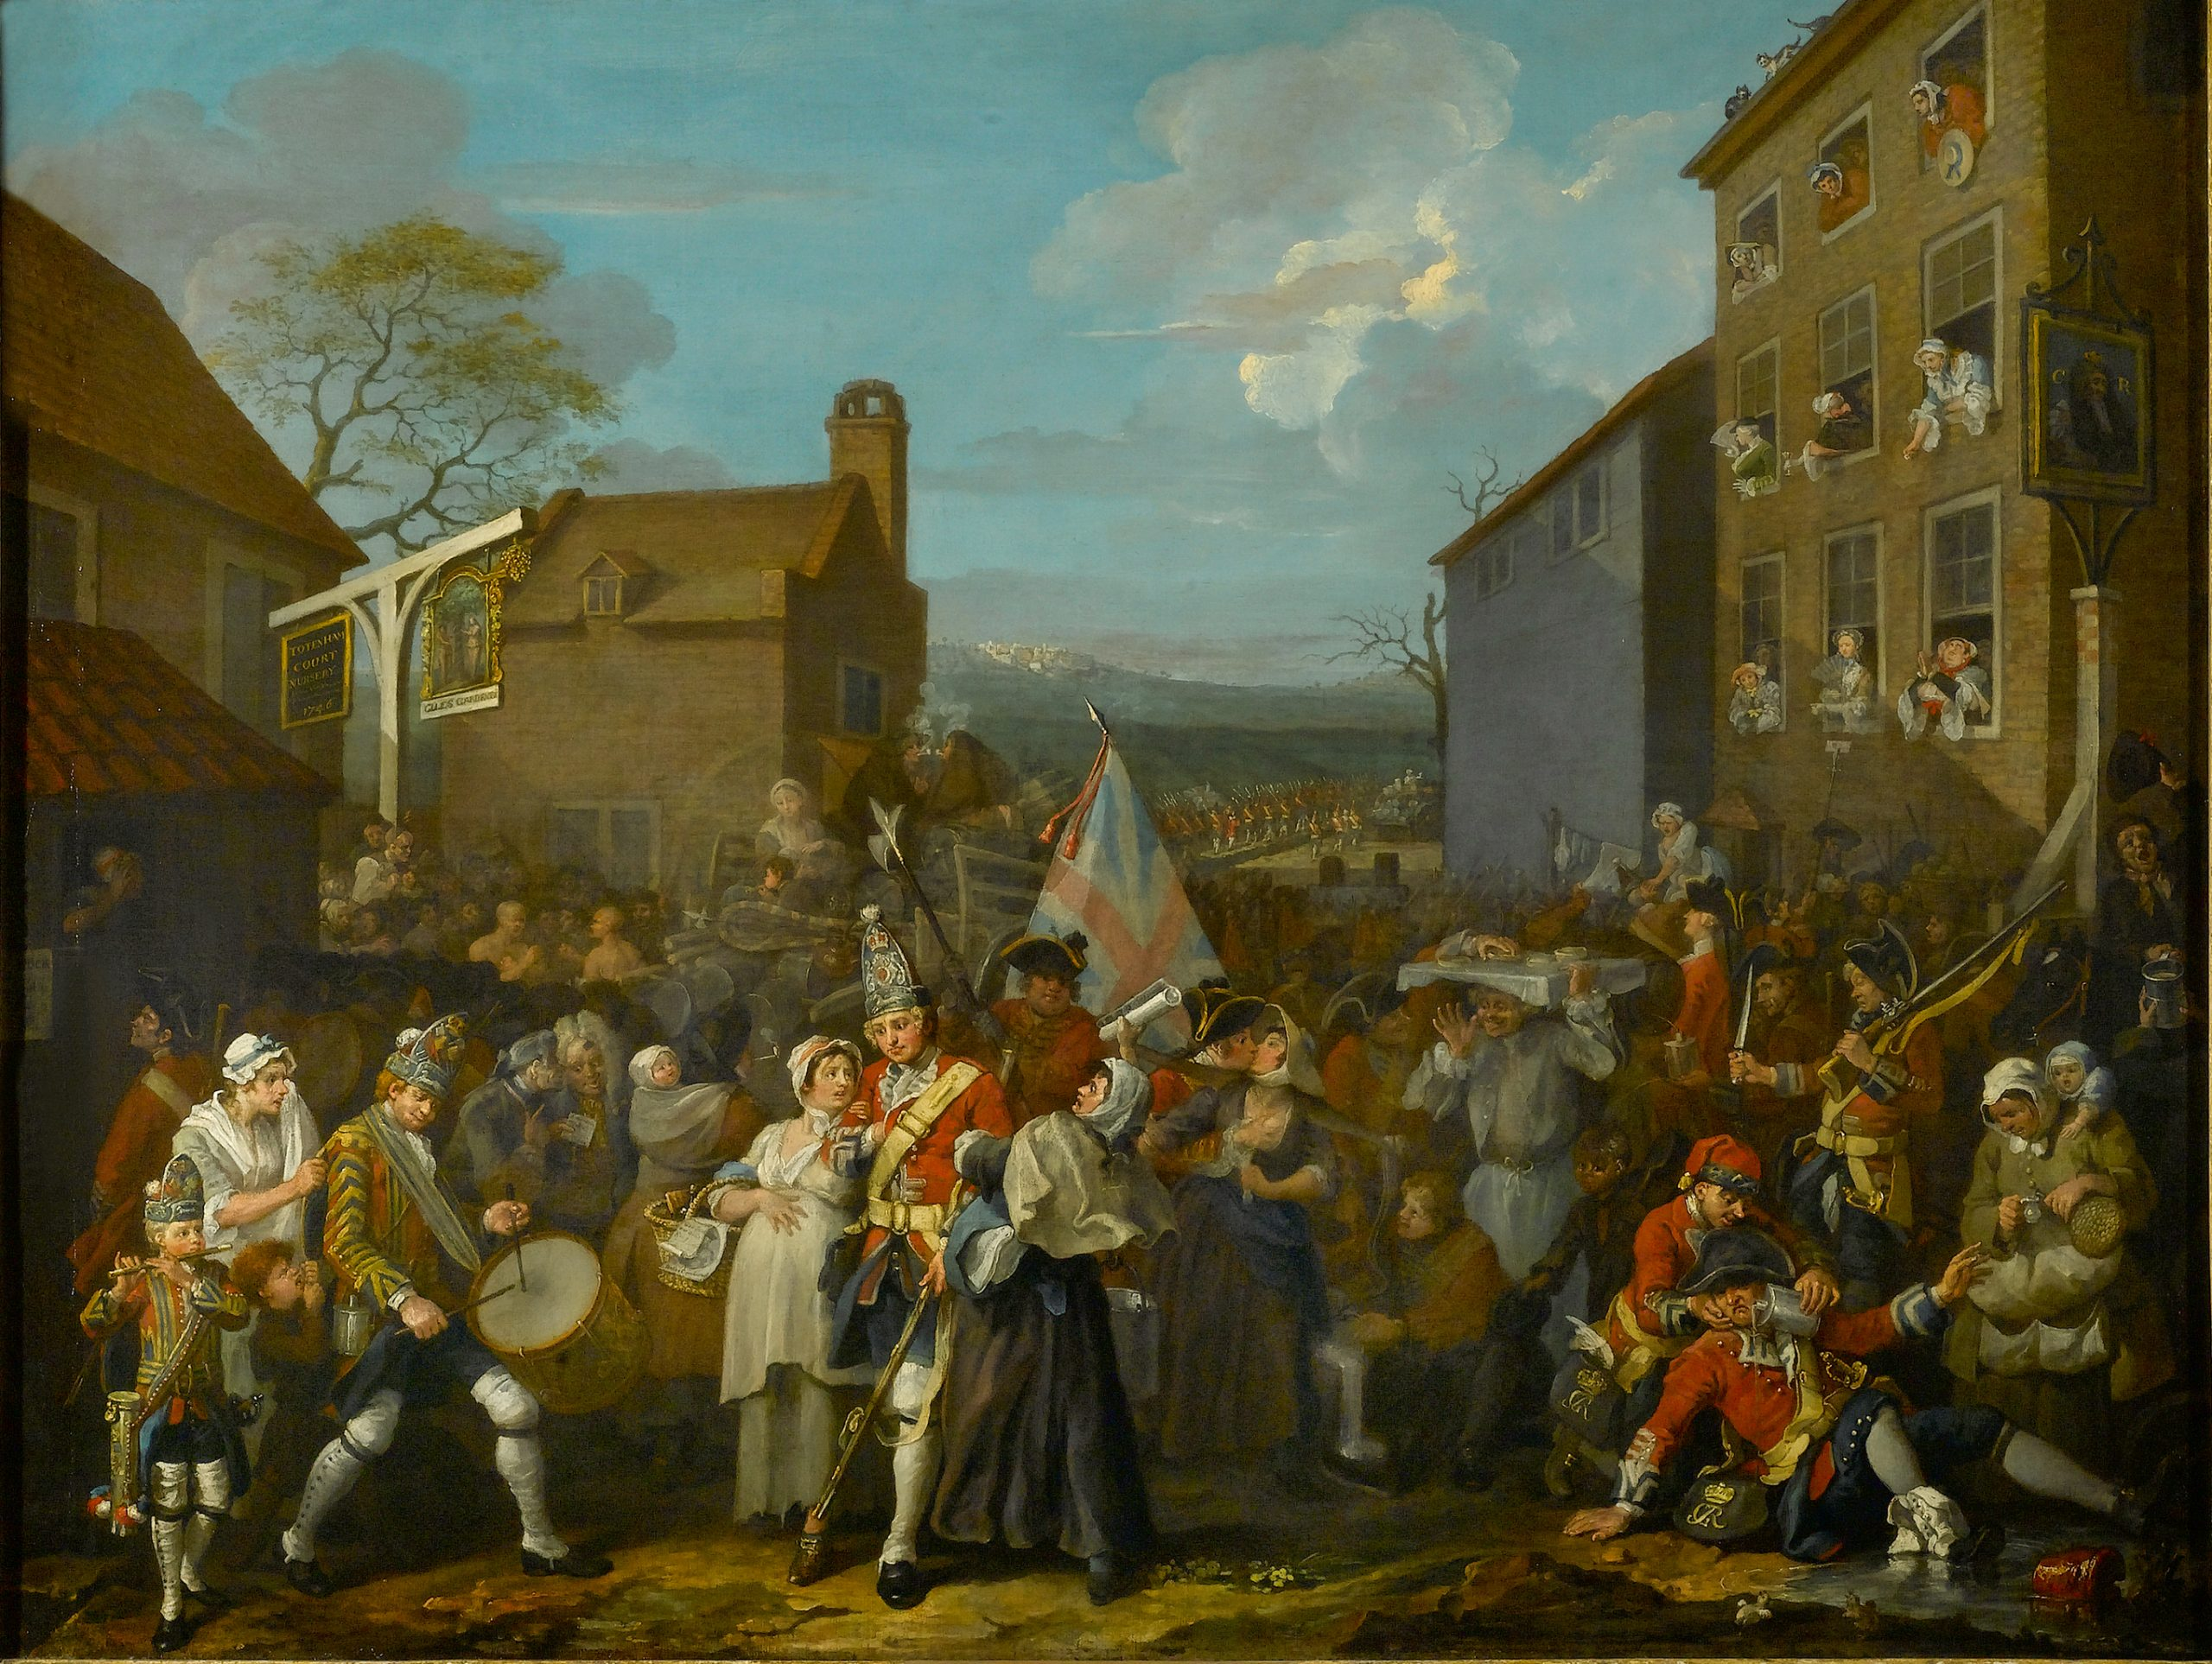 William Hogarth, The March of the Guards to Finchley, 1750